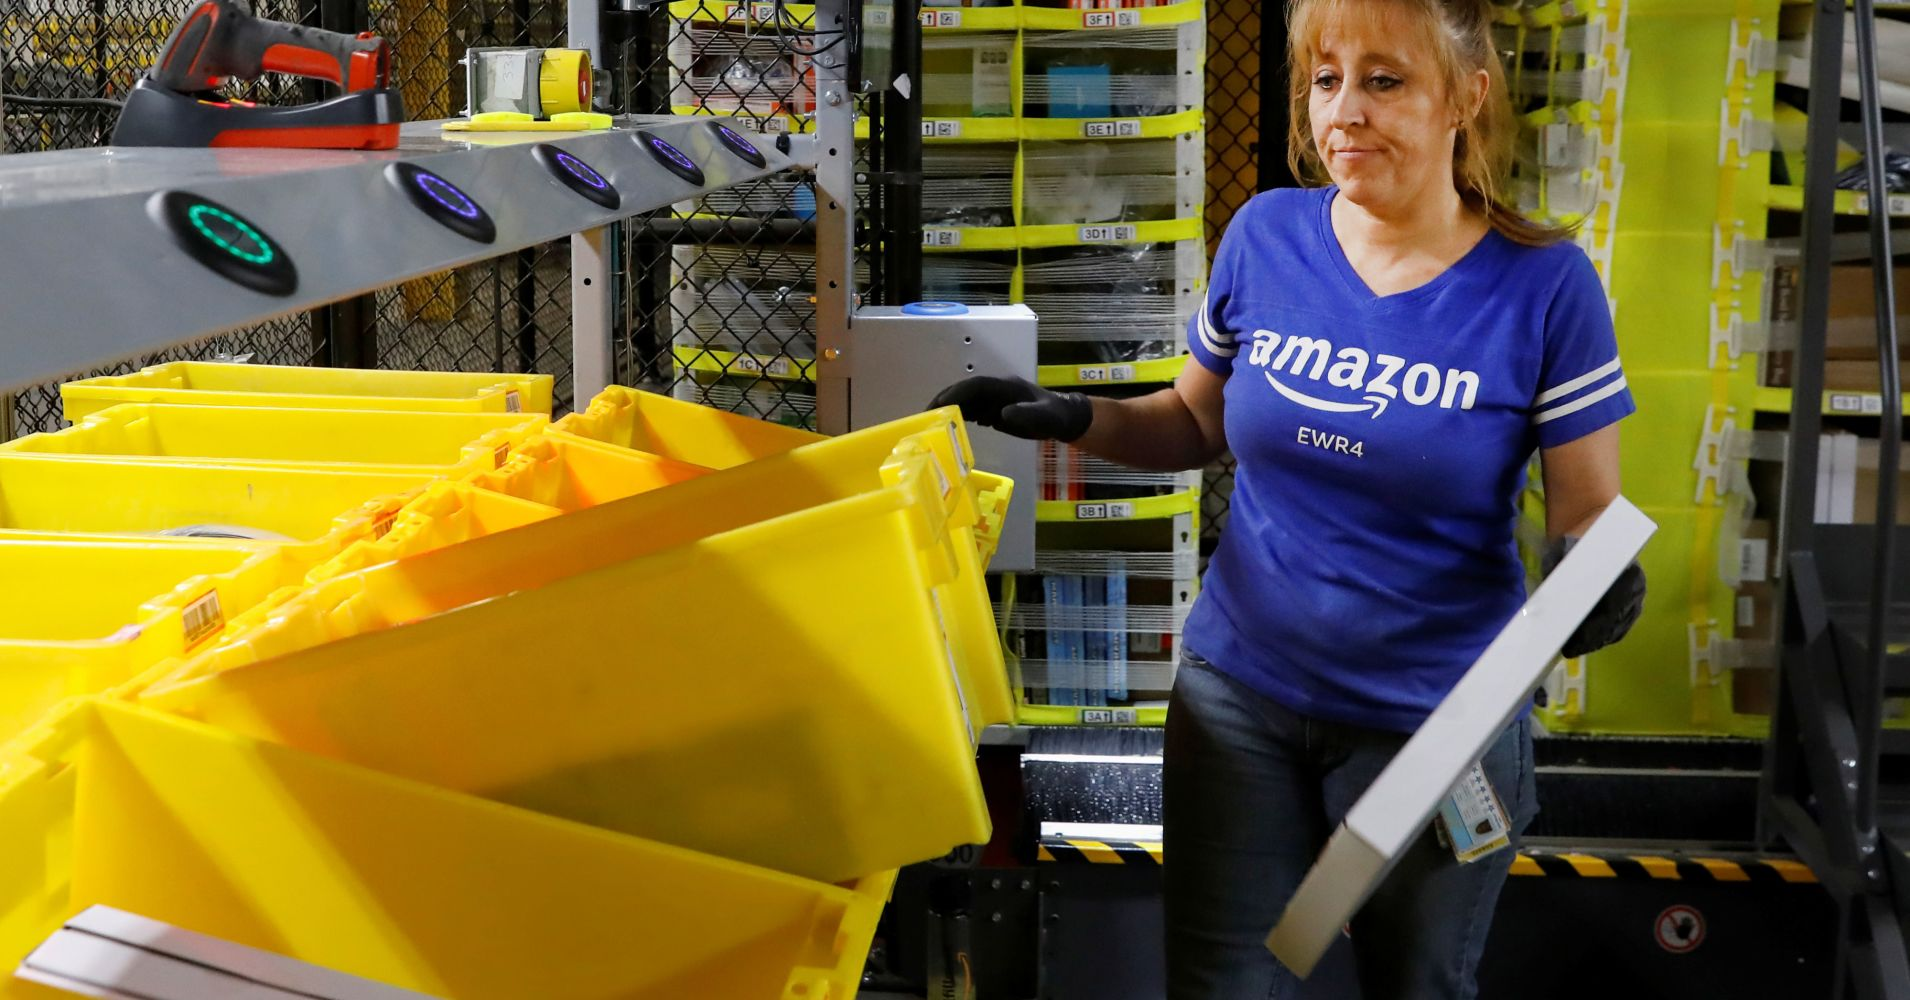 Amazon is the latest retailer to brag about worker compensation